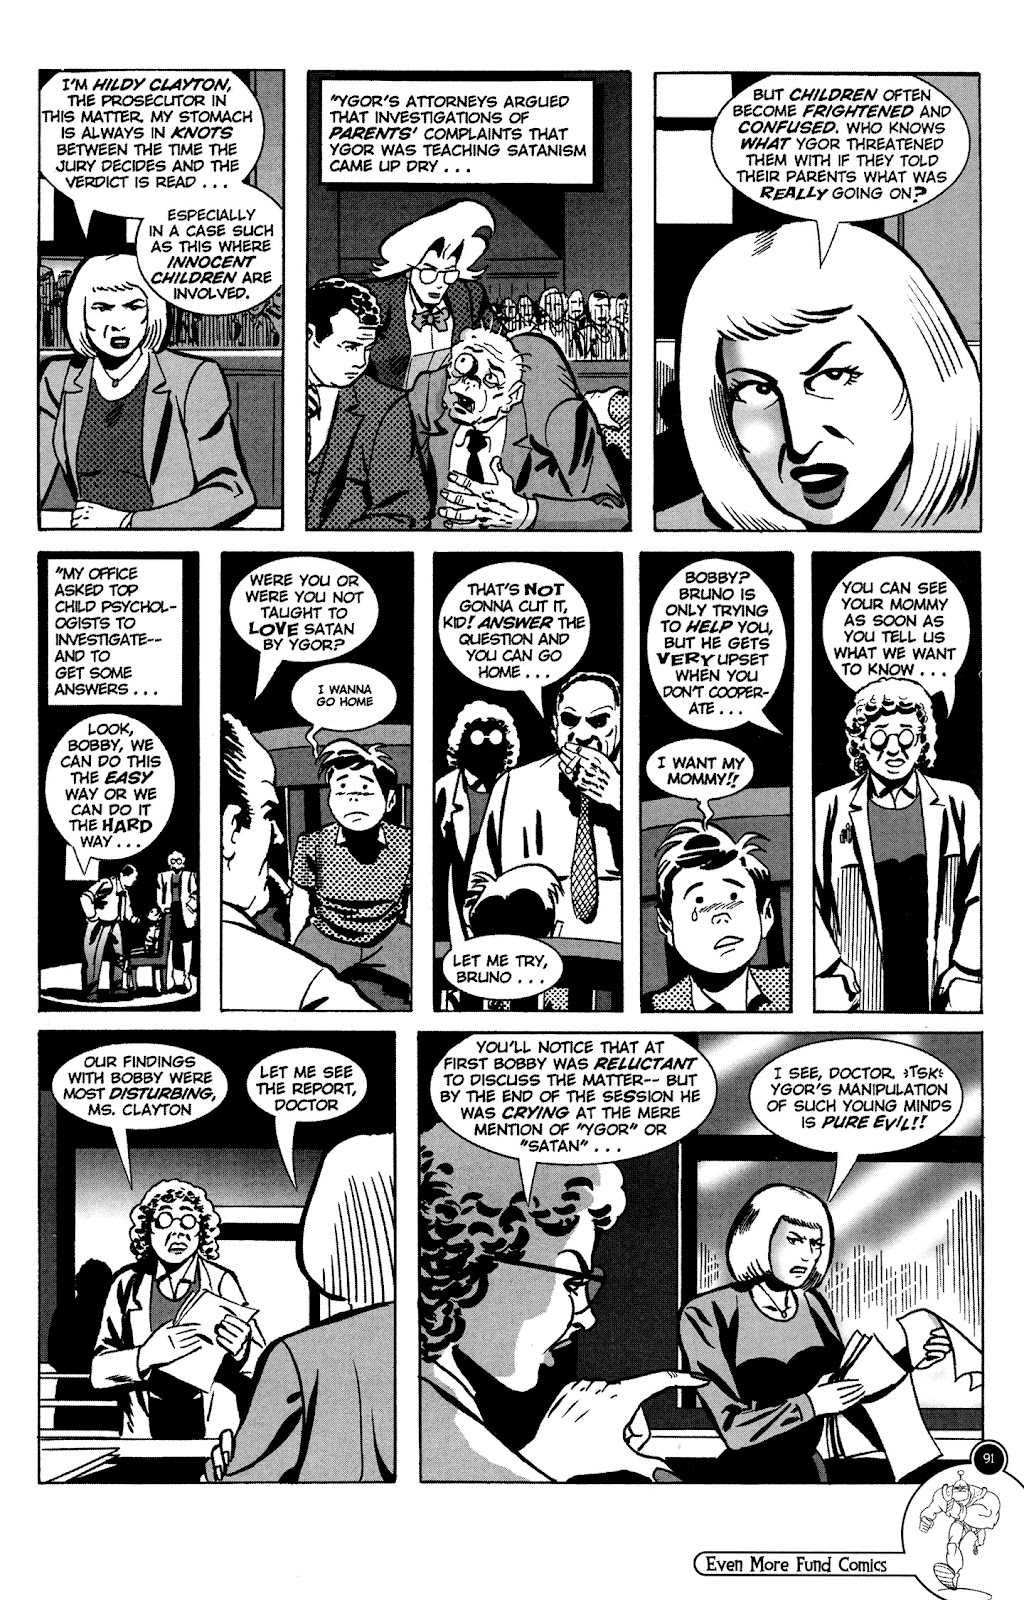 Read online Even More Fund Comics comic -  Issue # TPB (Part 1) - 91